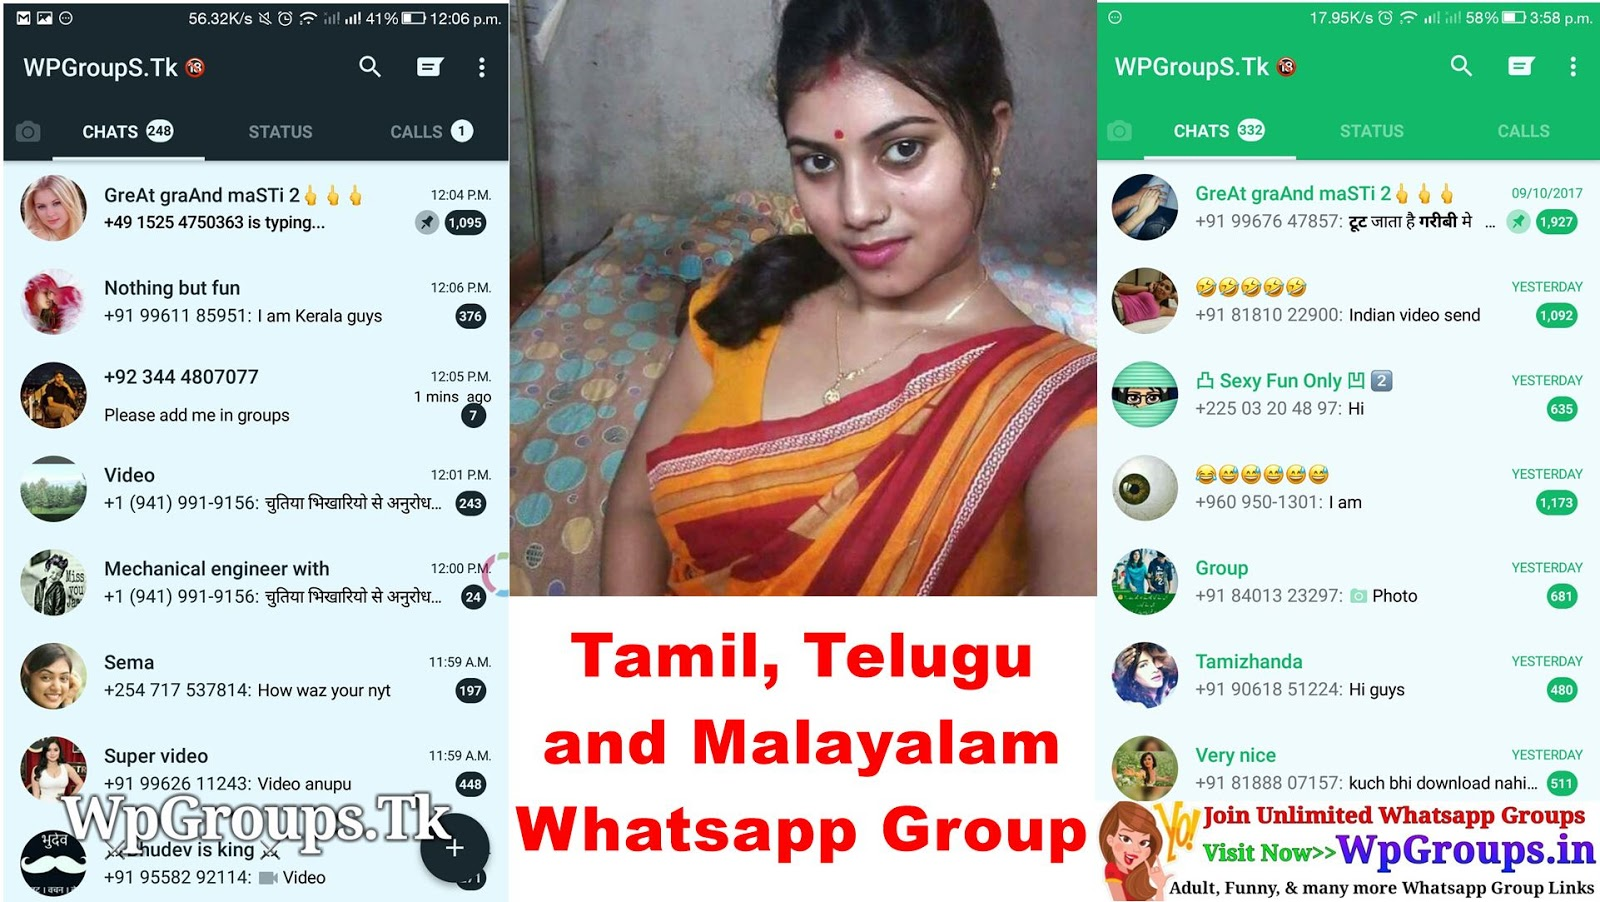 malayalam and telugu whatsapp group links many people searching lots of time for tamil and malayalam whatsapp group link so now i m here with 100